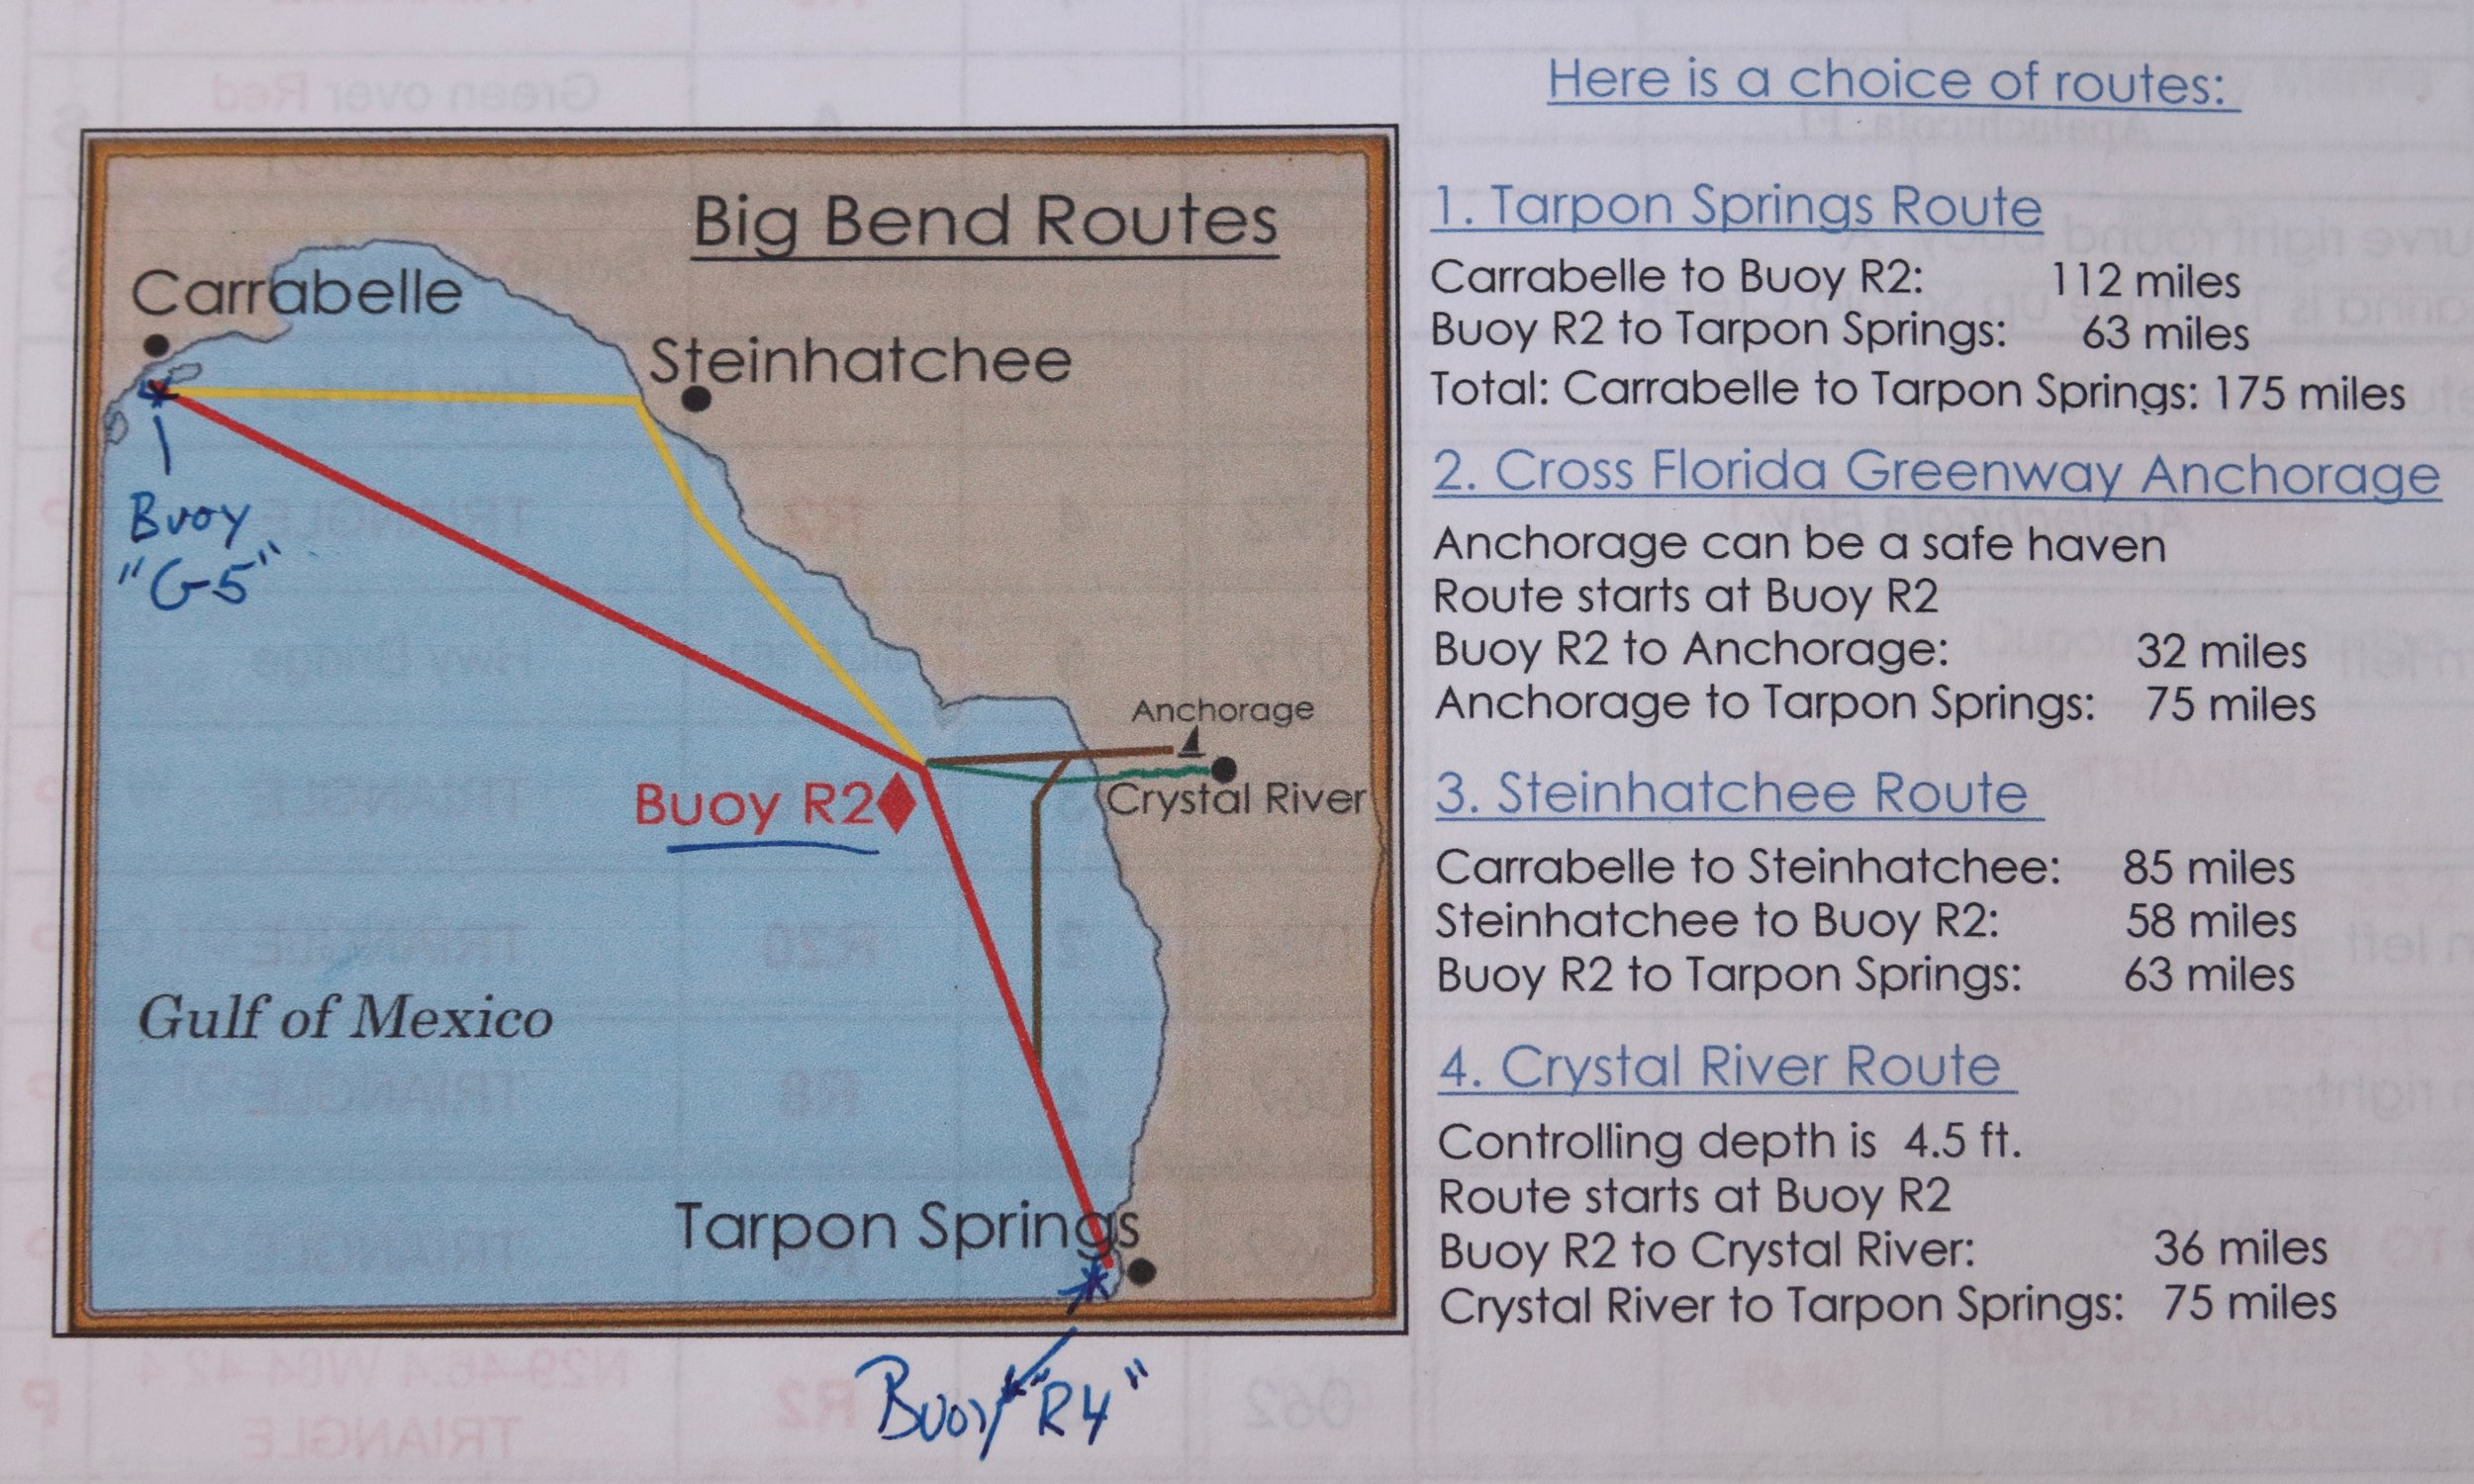 We took the Tarpon Springs route - From Captain Alan Lloyd's hugely helpful  Great Loop Navigation Notes